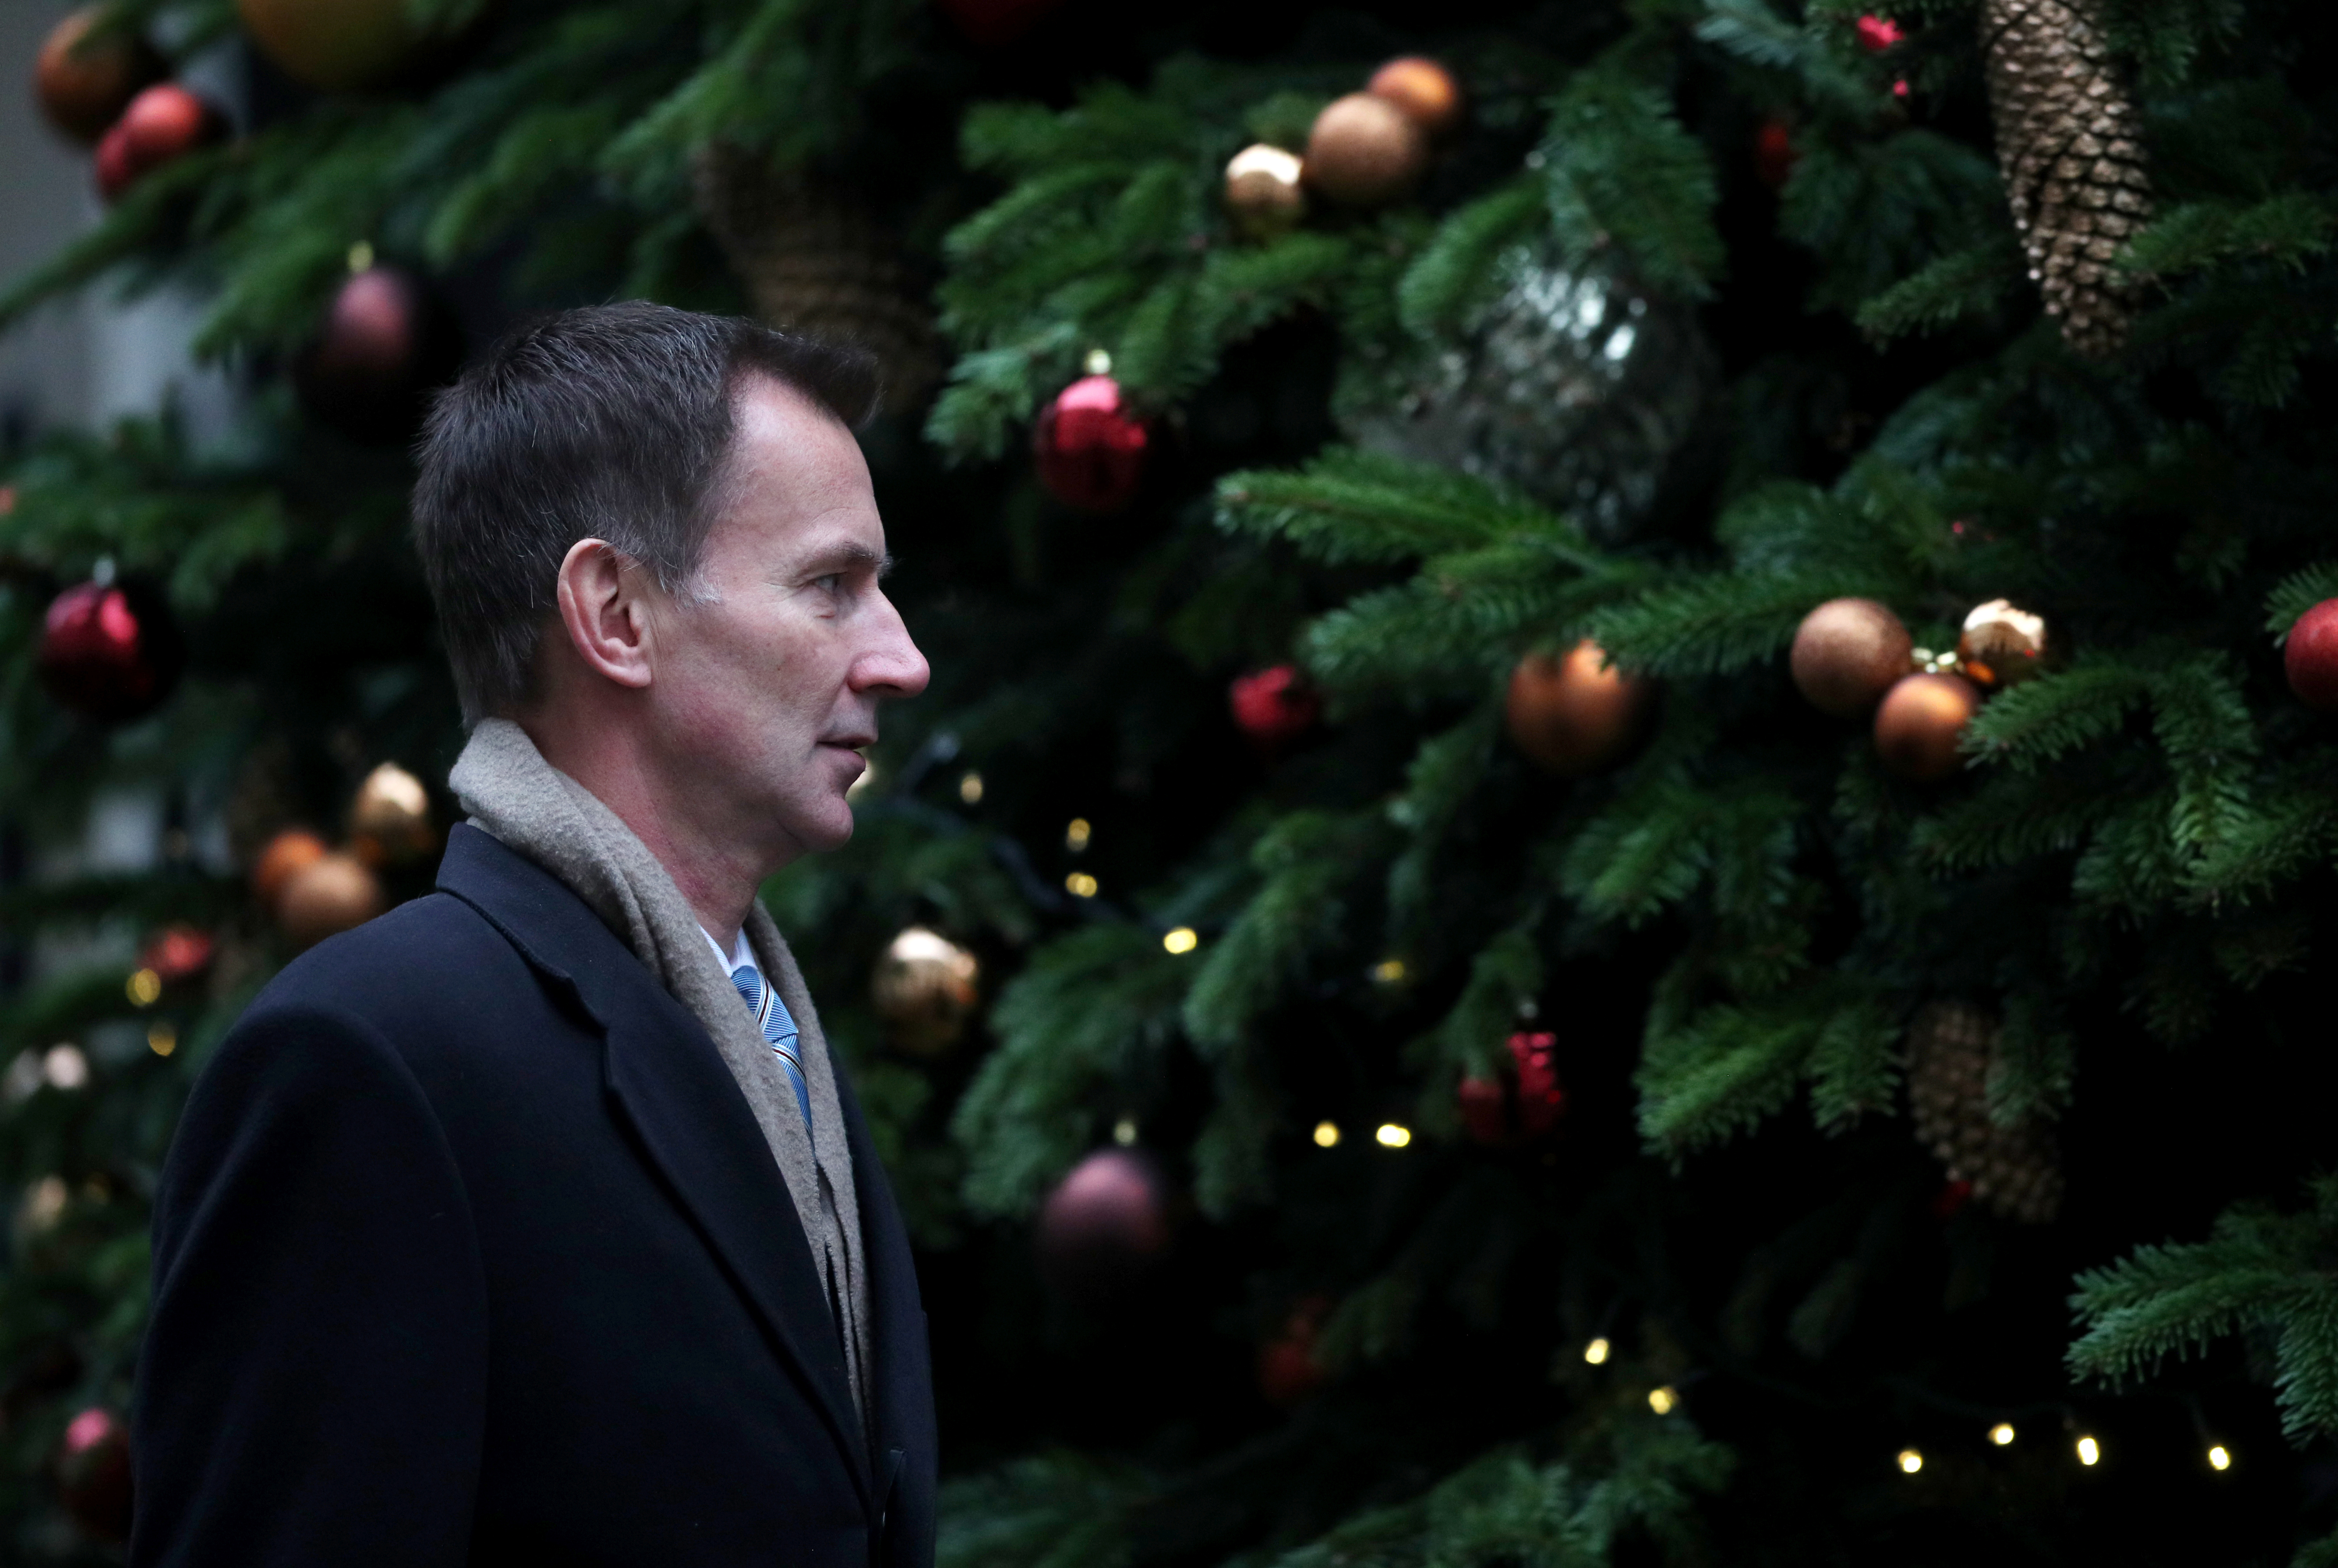 FILE PHOTO: Britain's Foreign Secretary Jeremy Hunt arrives in Downing Street, London, Britain, December 18, 2018. REUTERS/Hannah McKay